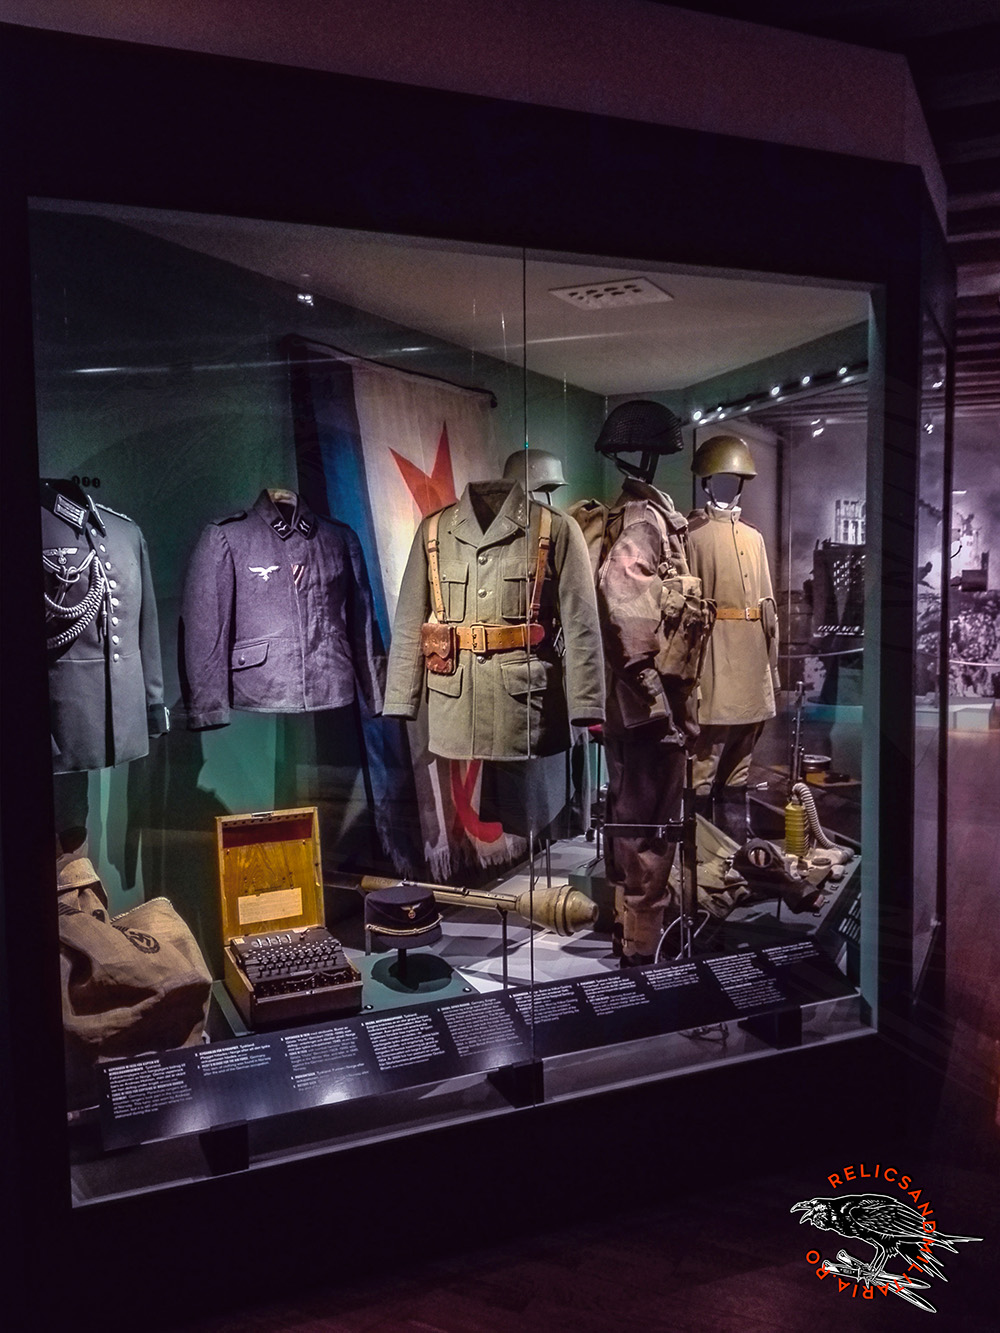 ww2 uniforms